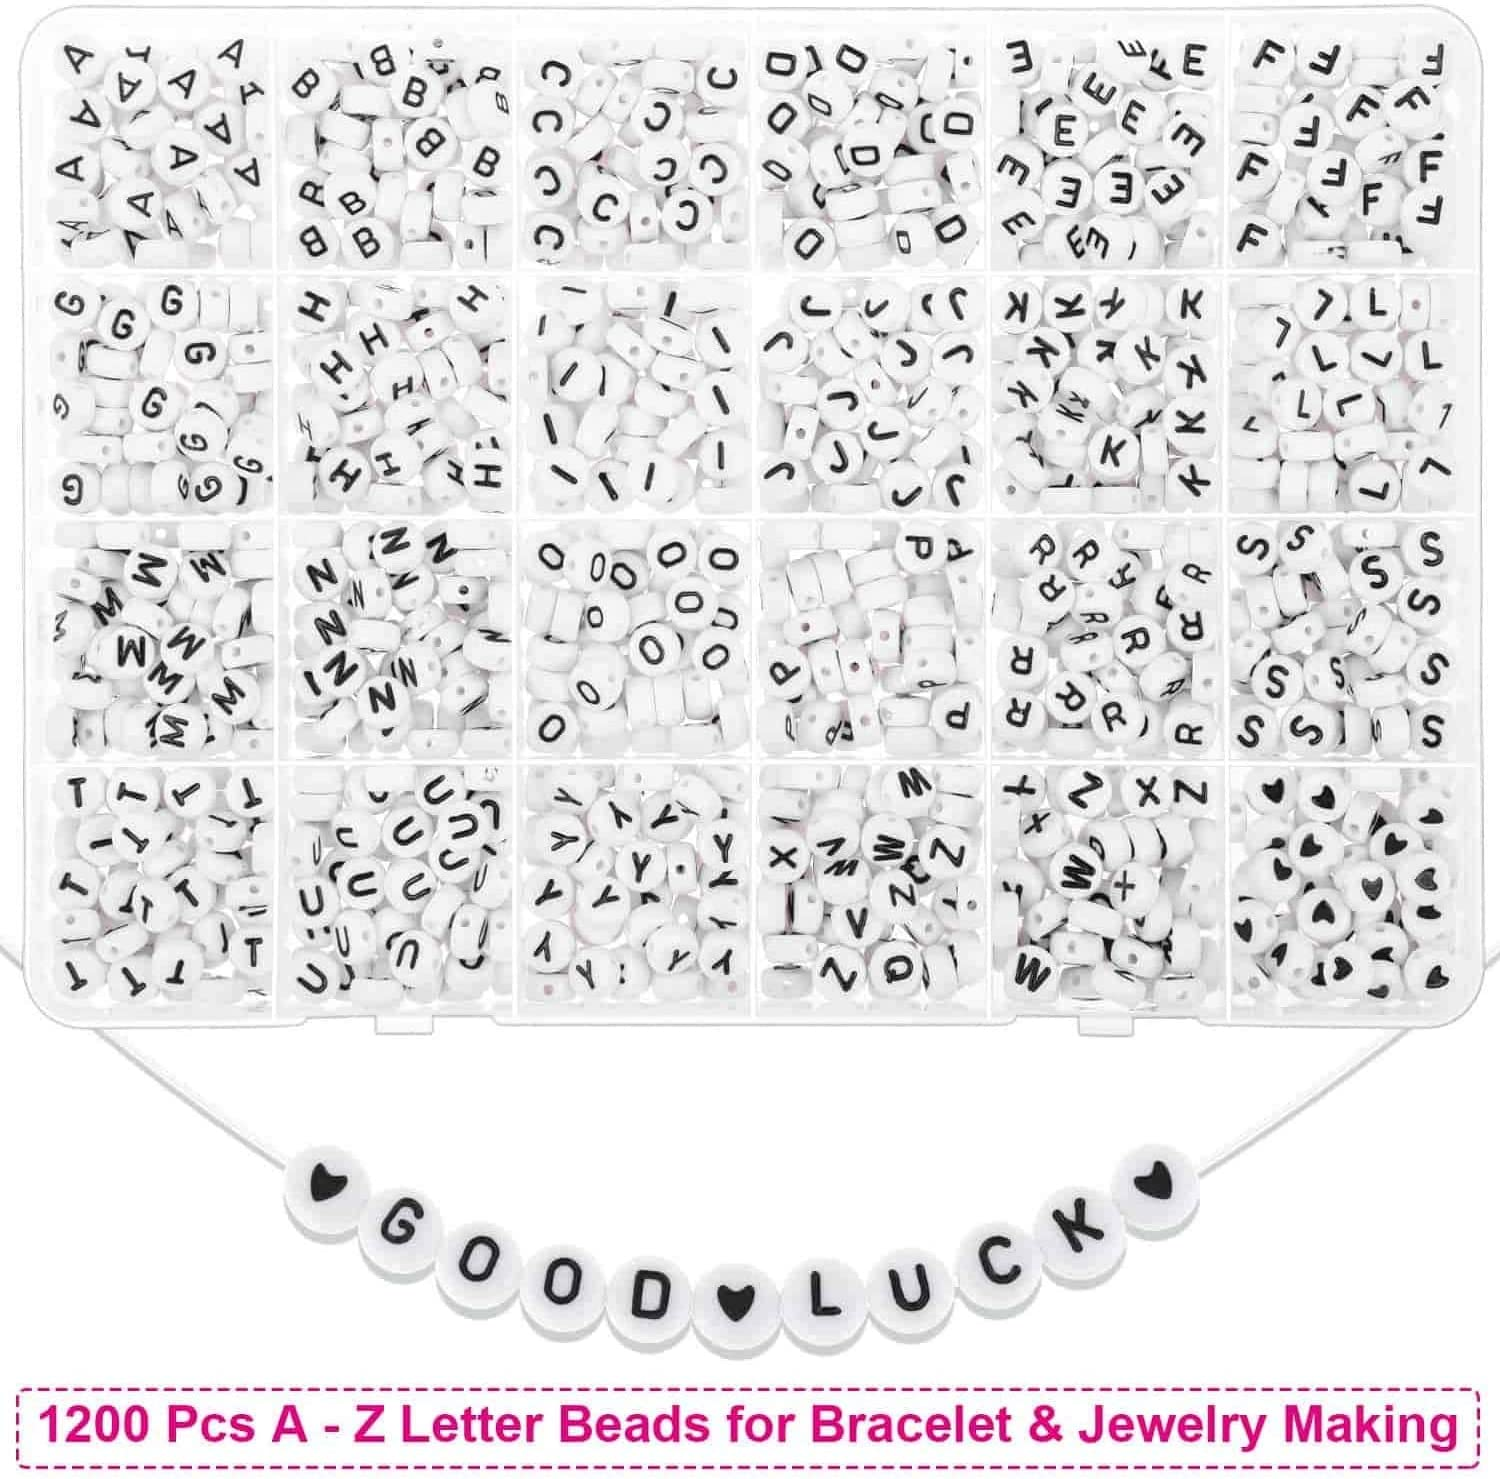 Bead Craft Kit Set,Glass Beads Small Letter Alphabet DIY Art and Craft for Women Wife Girlfriend Adult Kids Tesion Jewelry Making Kit Beads for Bracelets